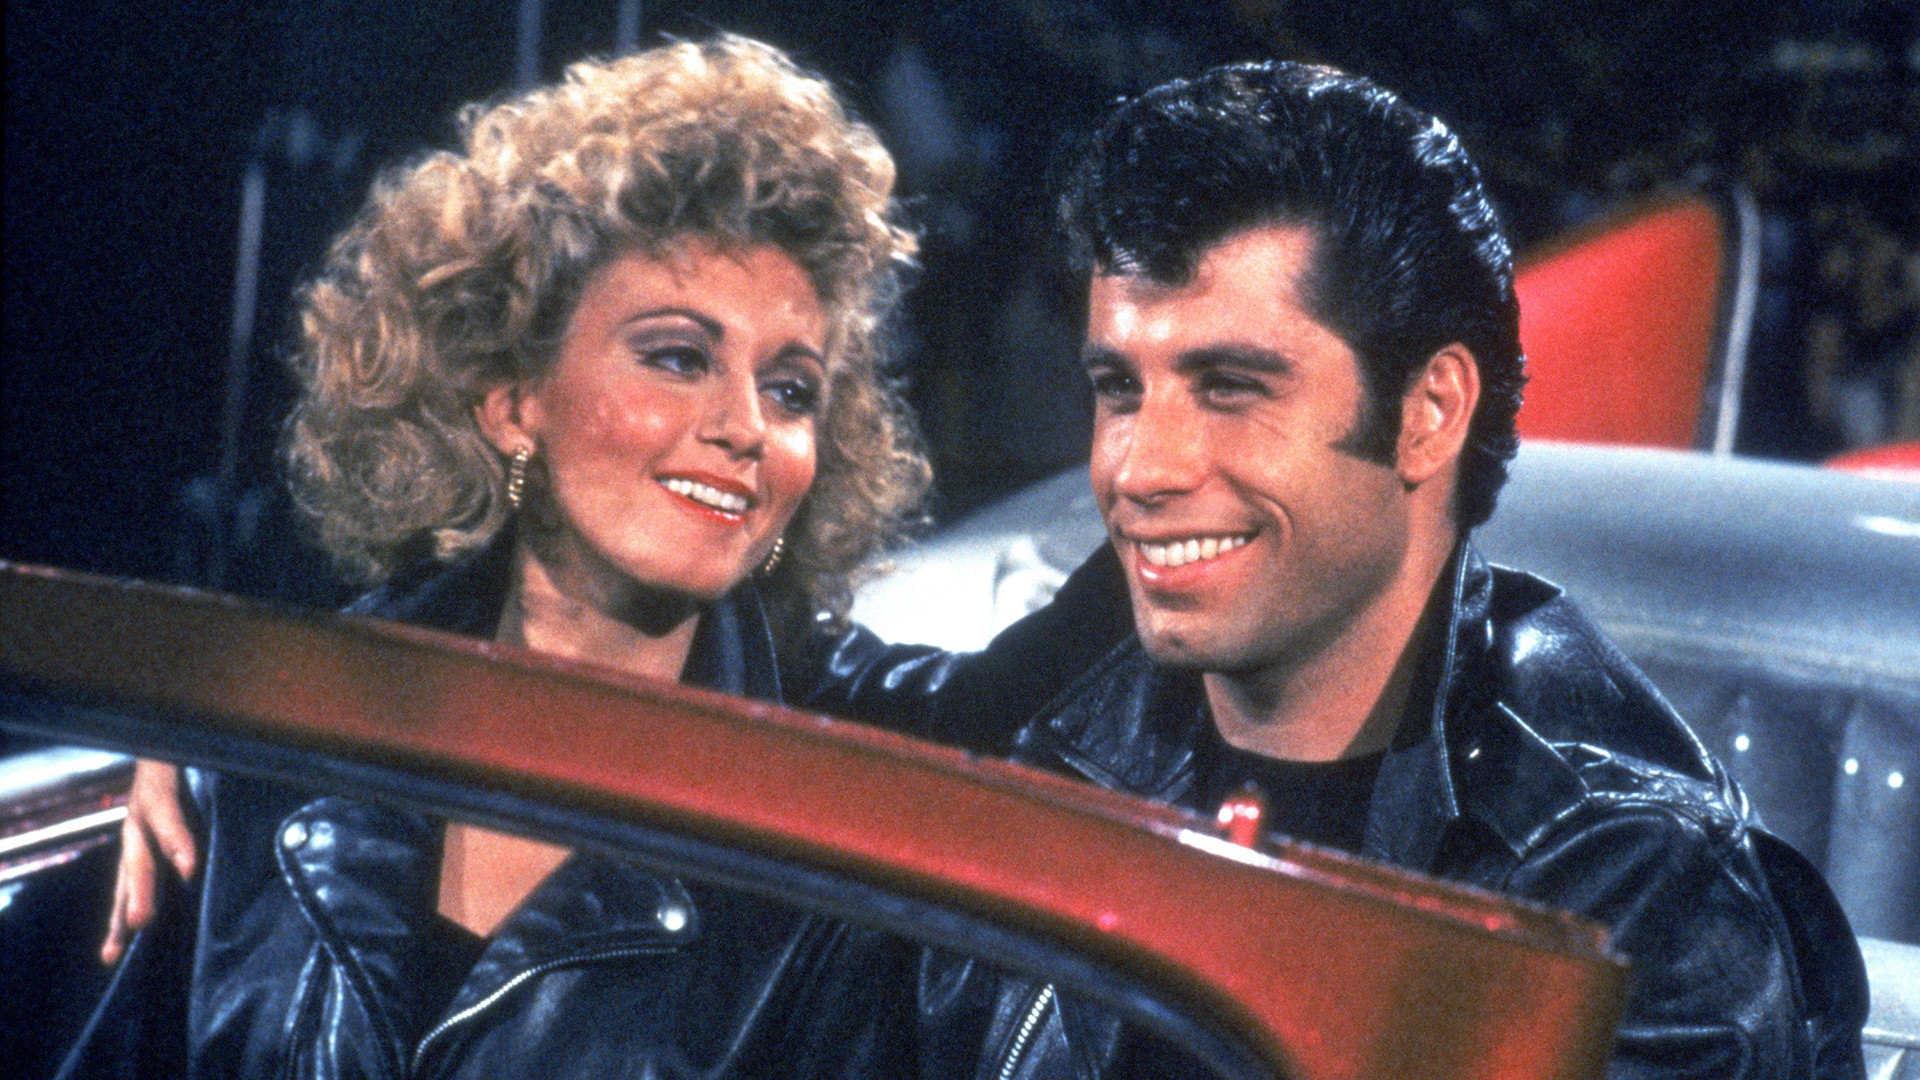 1920x1080 This fan theory about 'Grease' may give you chills - TODAY.com